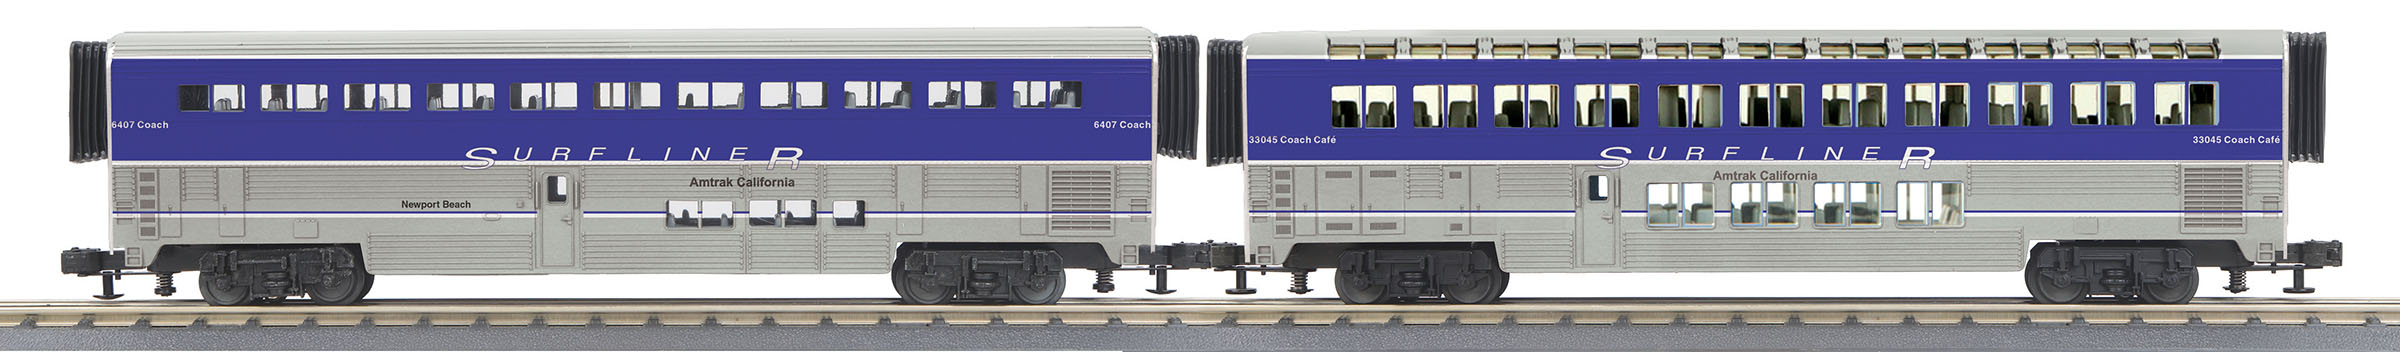 MTH306533 MTH Electric Trains O-31 SuperLiner Set, Amtrak/Lounge/Surfliner #6461